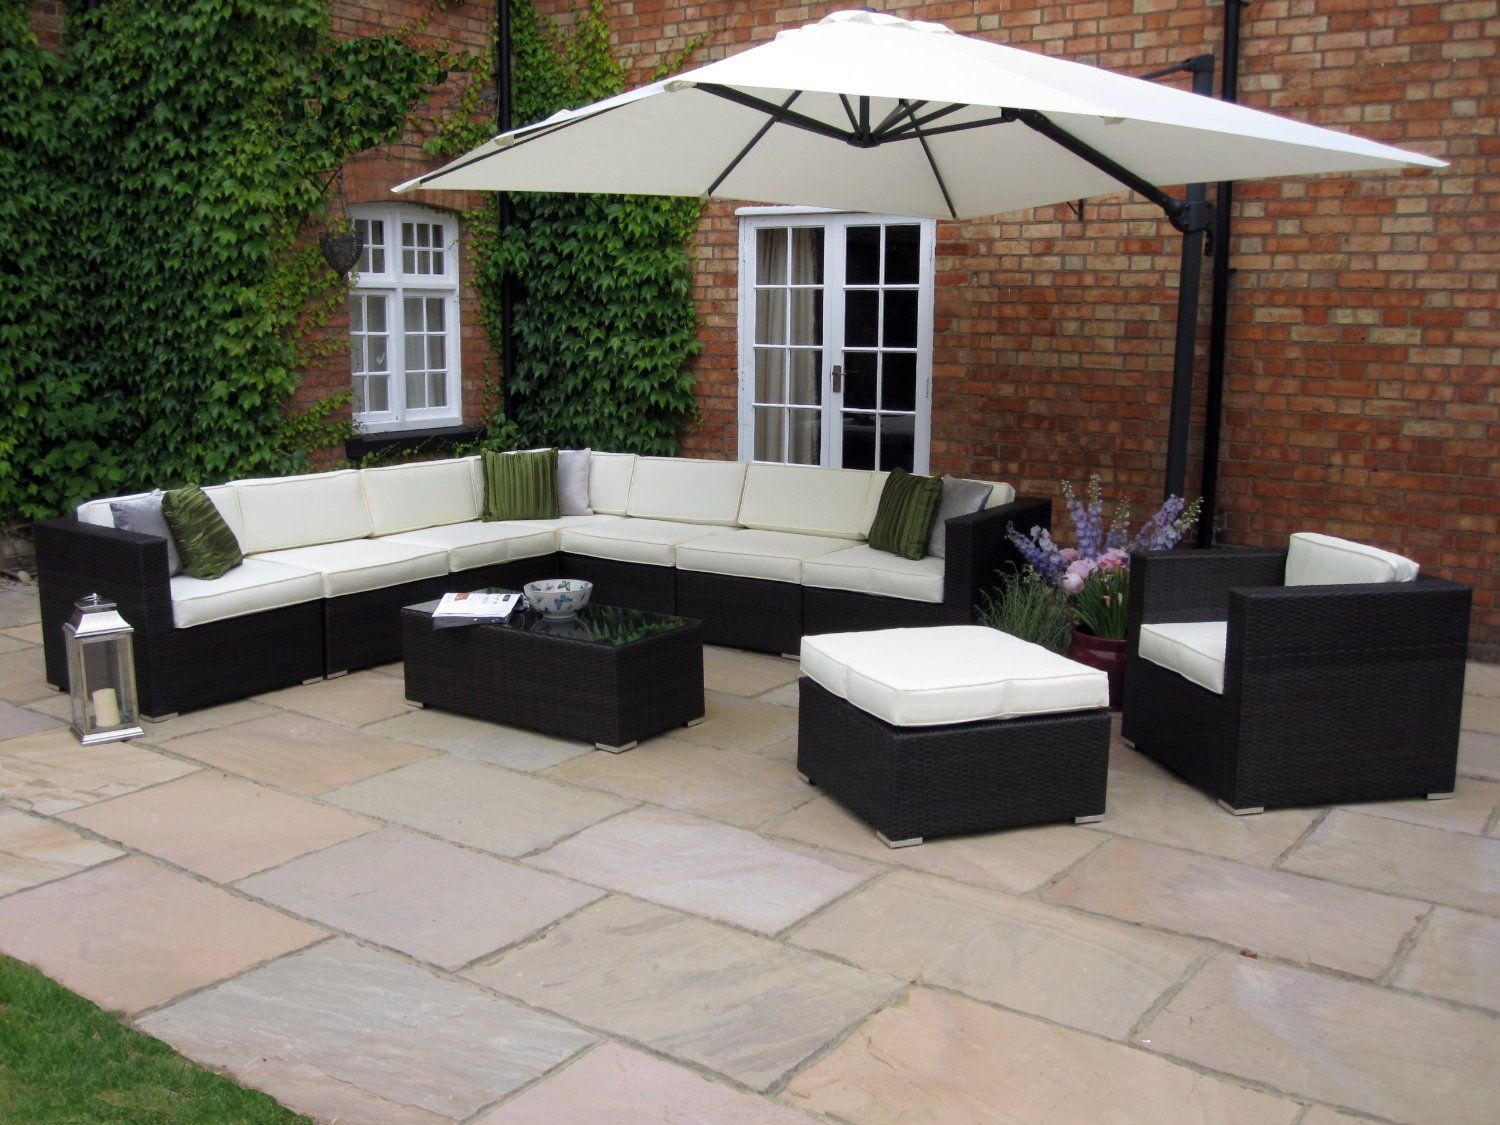 Rattan Garden Furniture And Rattan Dining Furniture From Oakita Garden Sofa Set Garden Sofa Rattan Garden Furniture